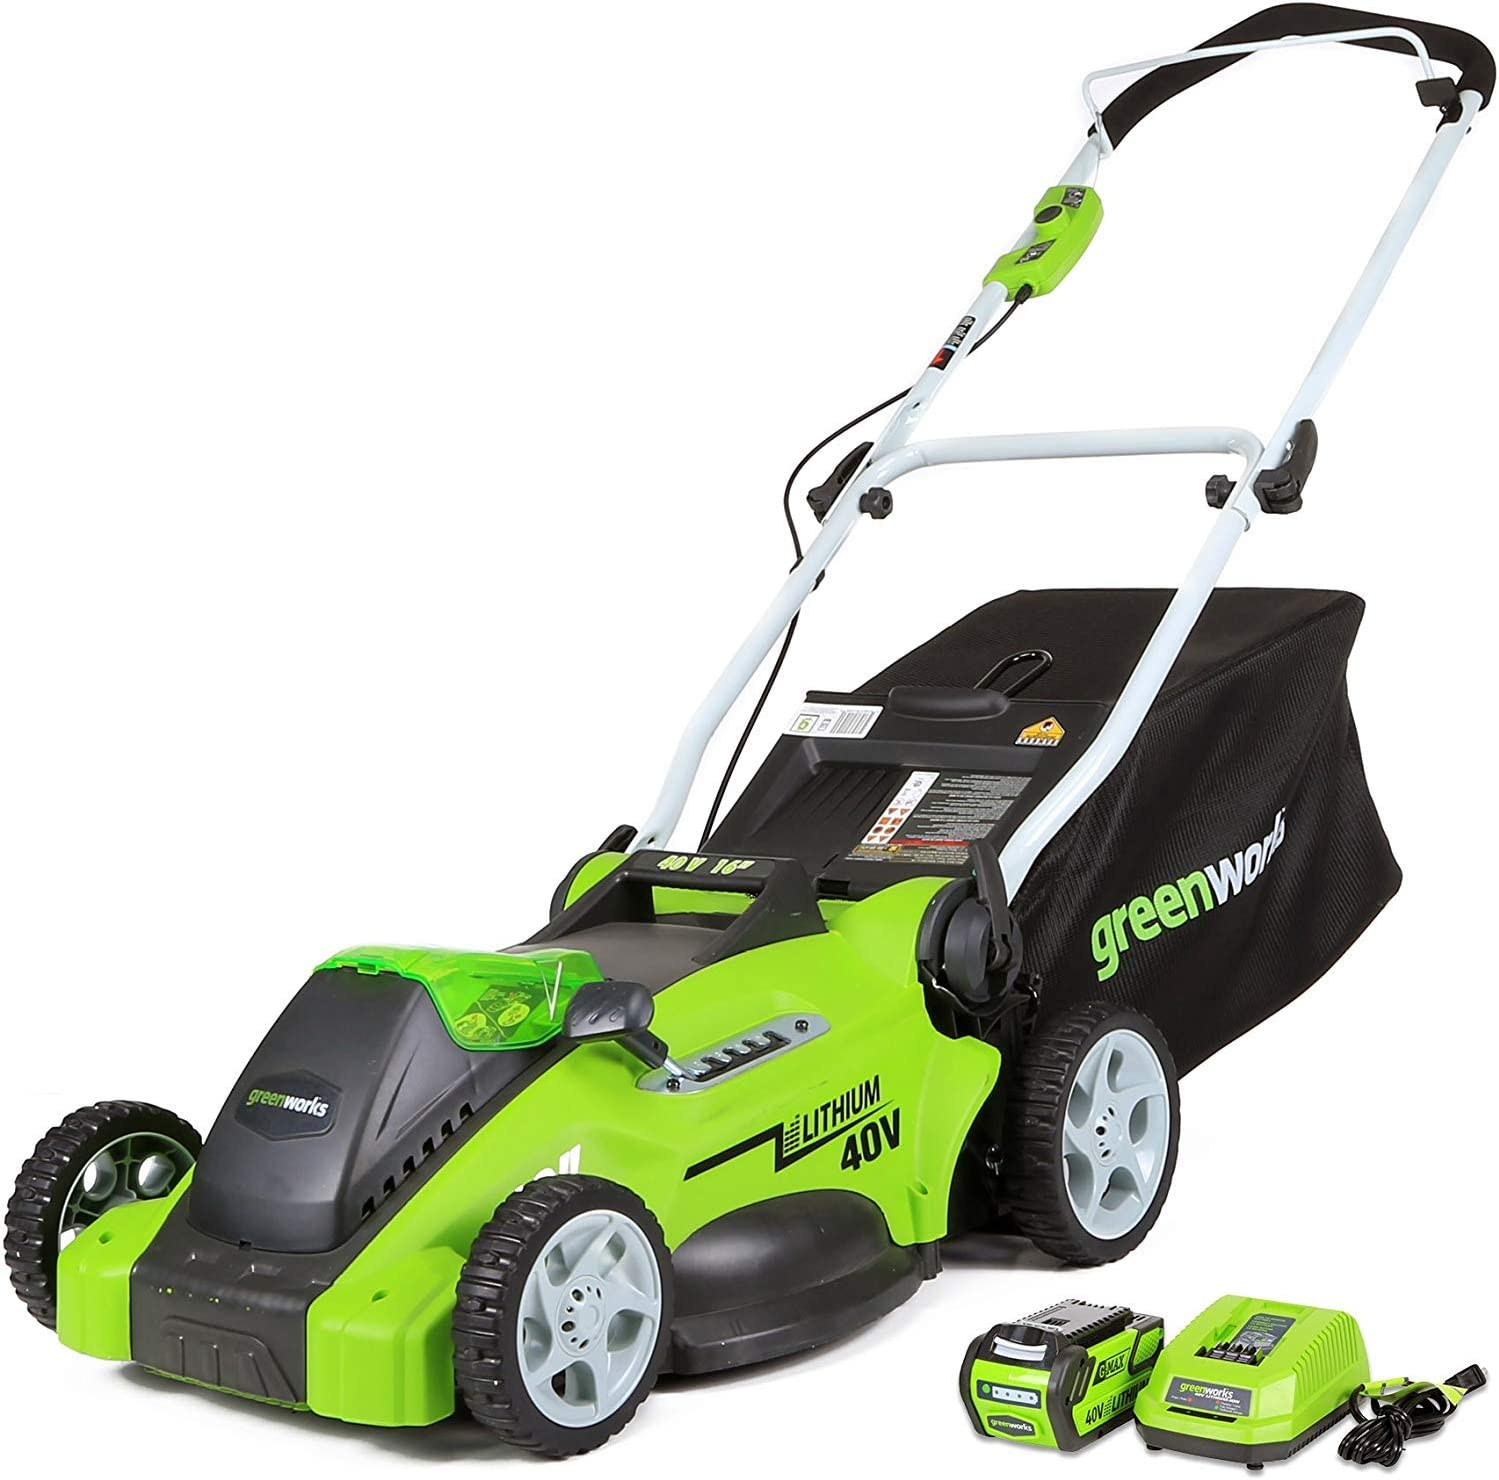 Greenworks 25322 Cordless Lawn Mower review